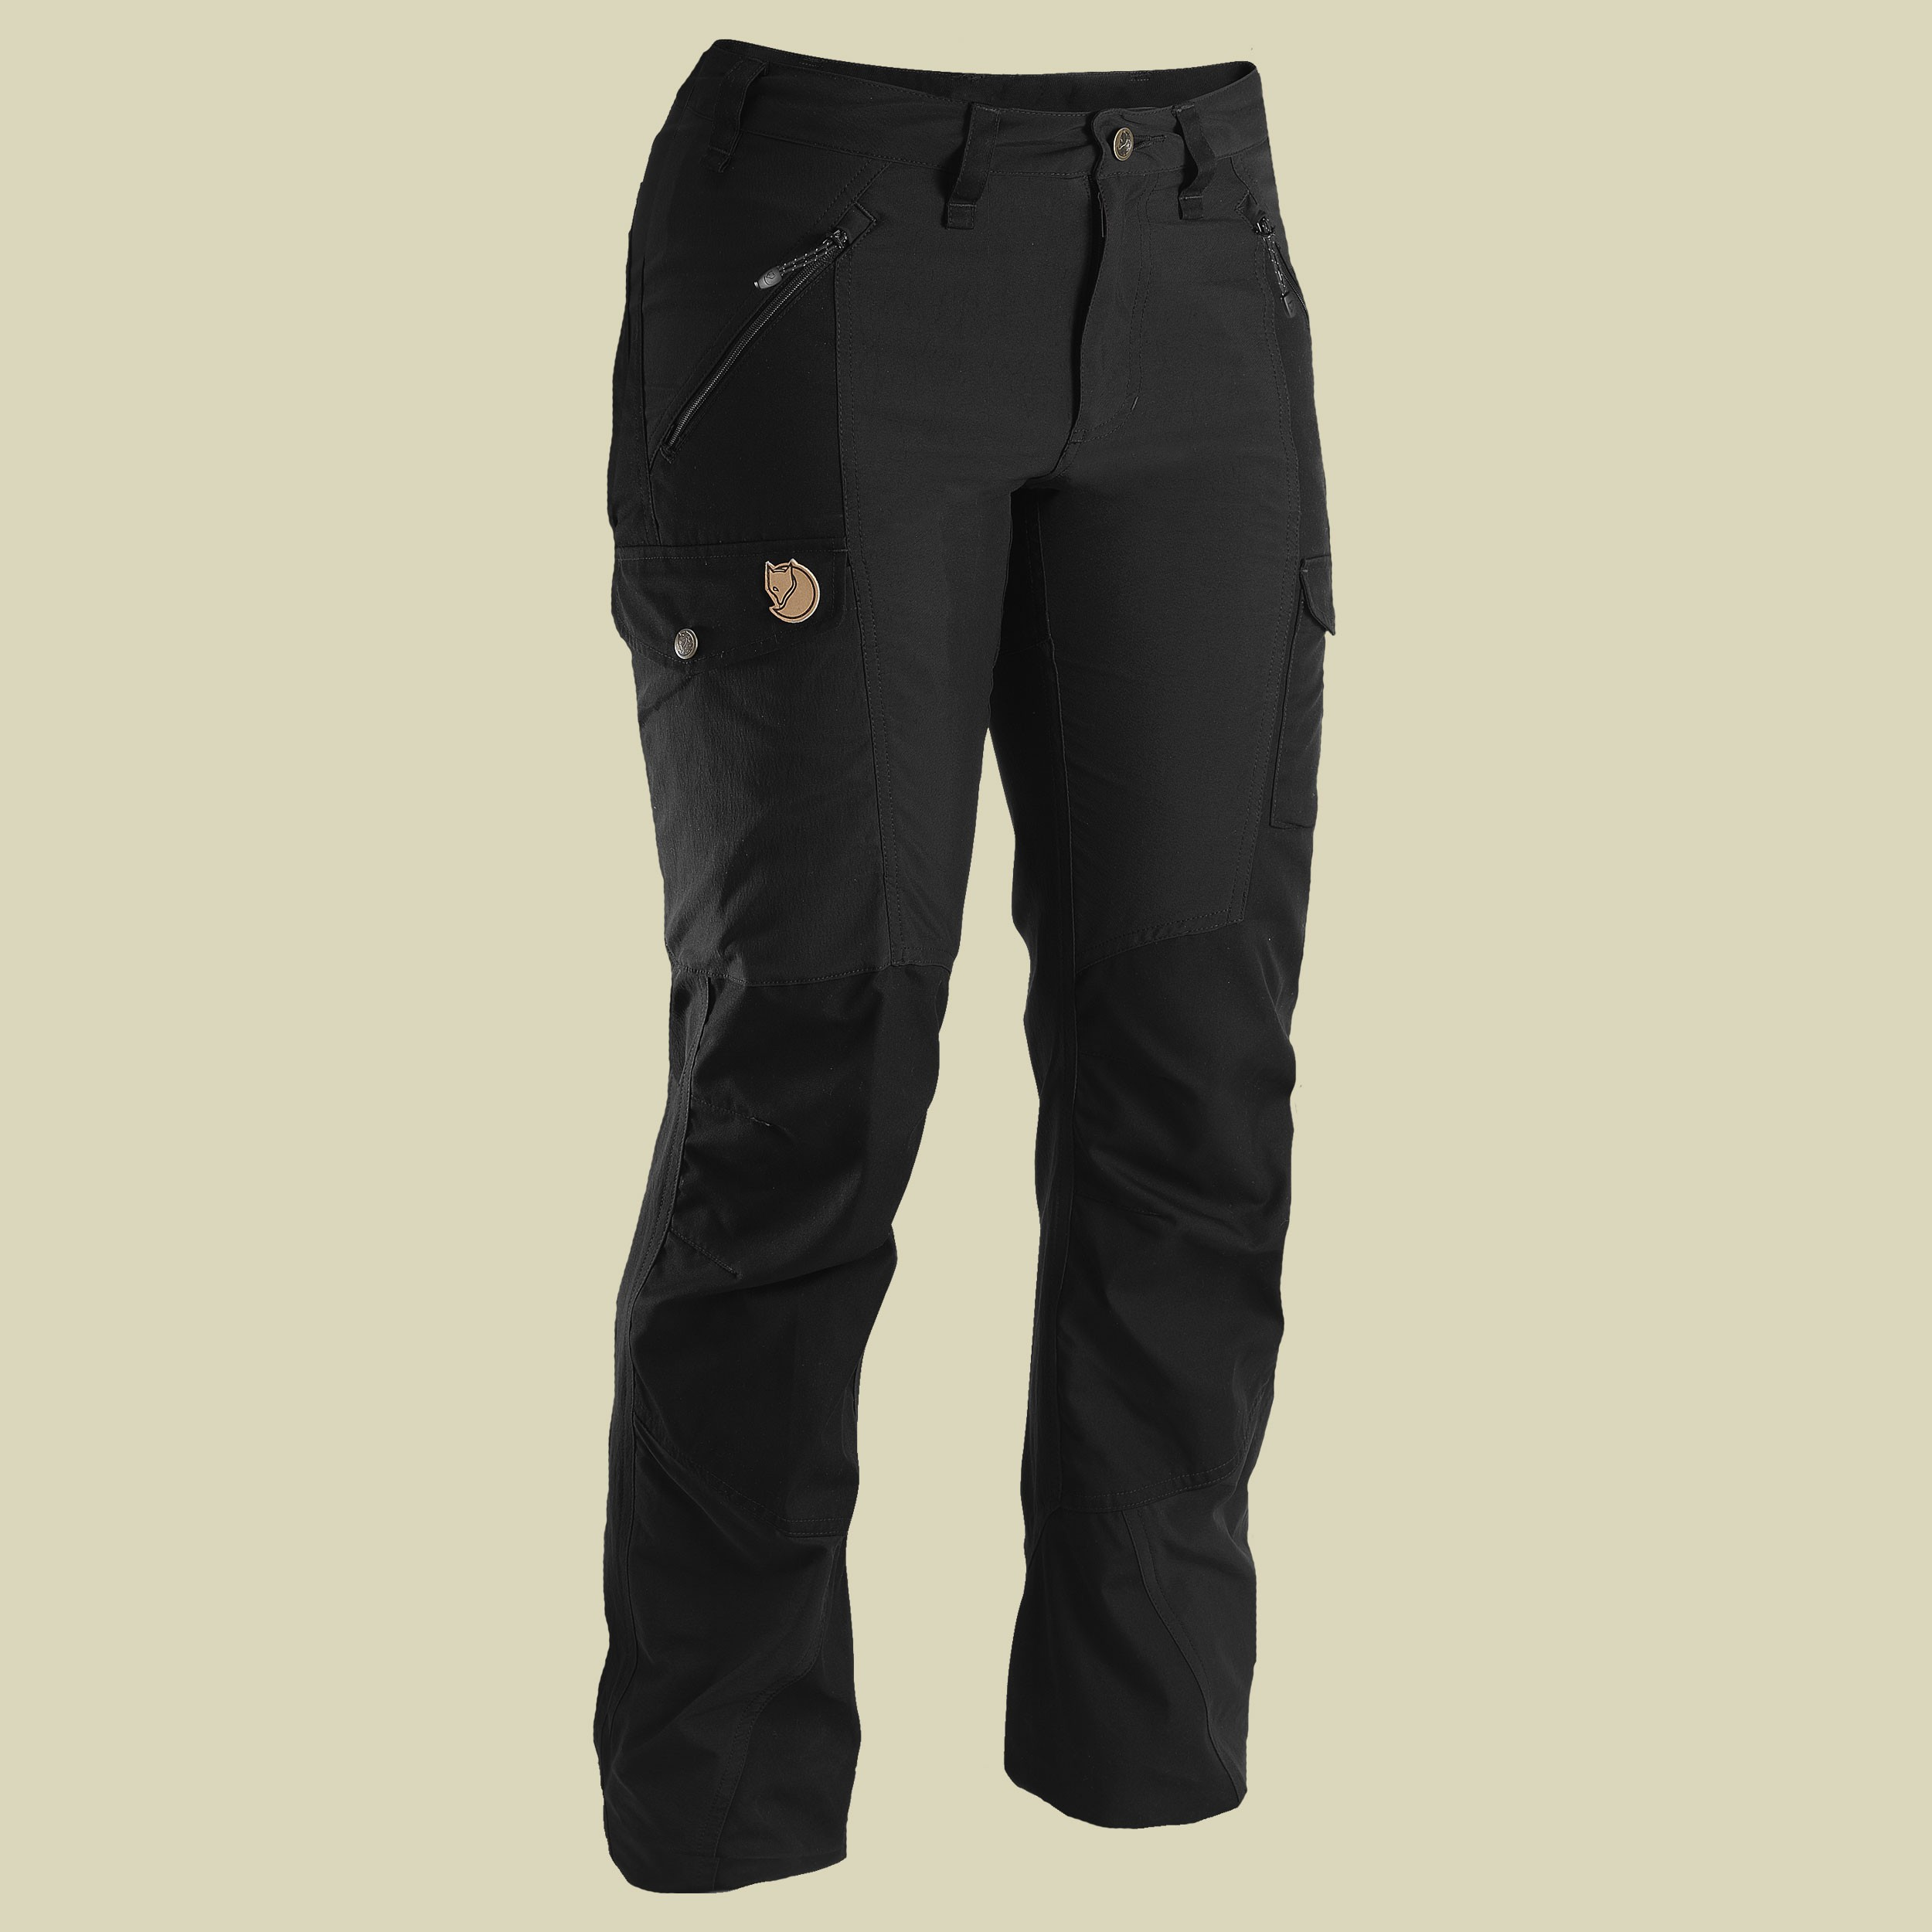 Nikka Trousers Women